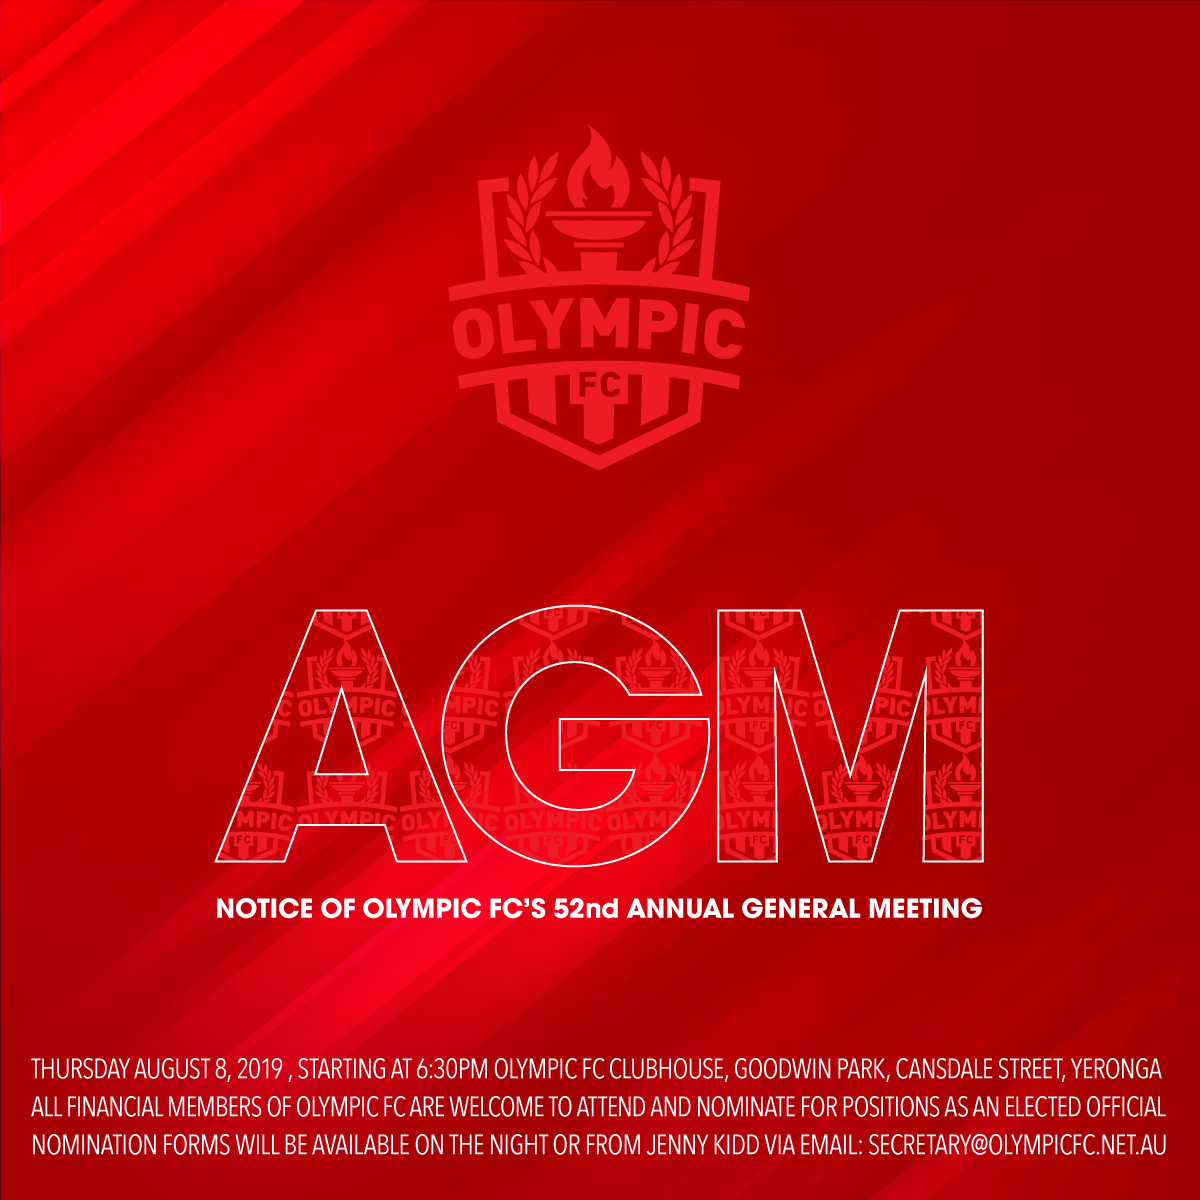 Olympic FC's 52nd Annual General Meeting